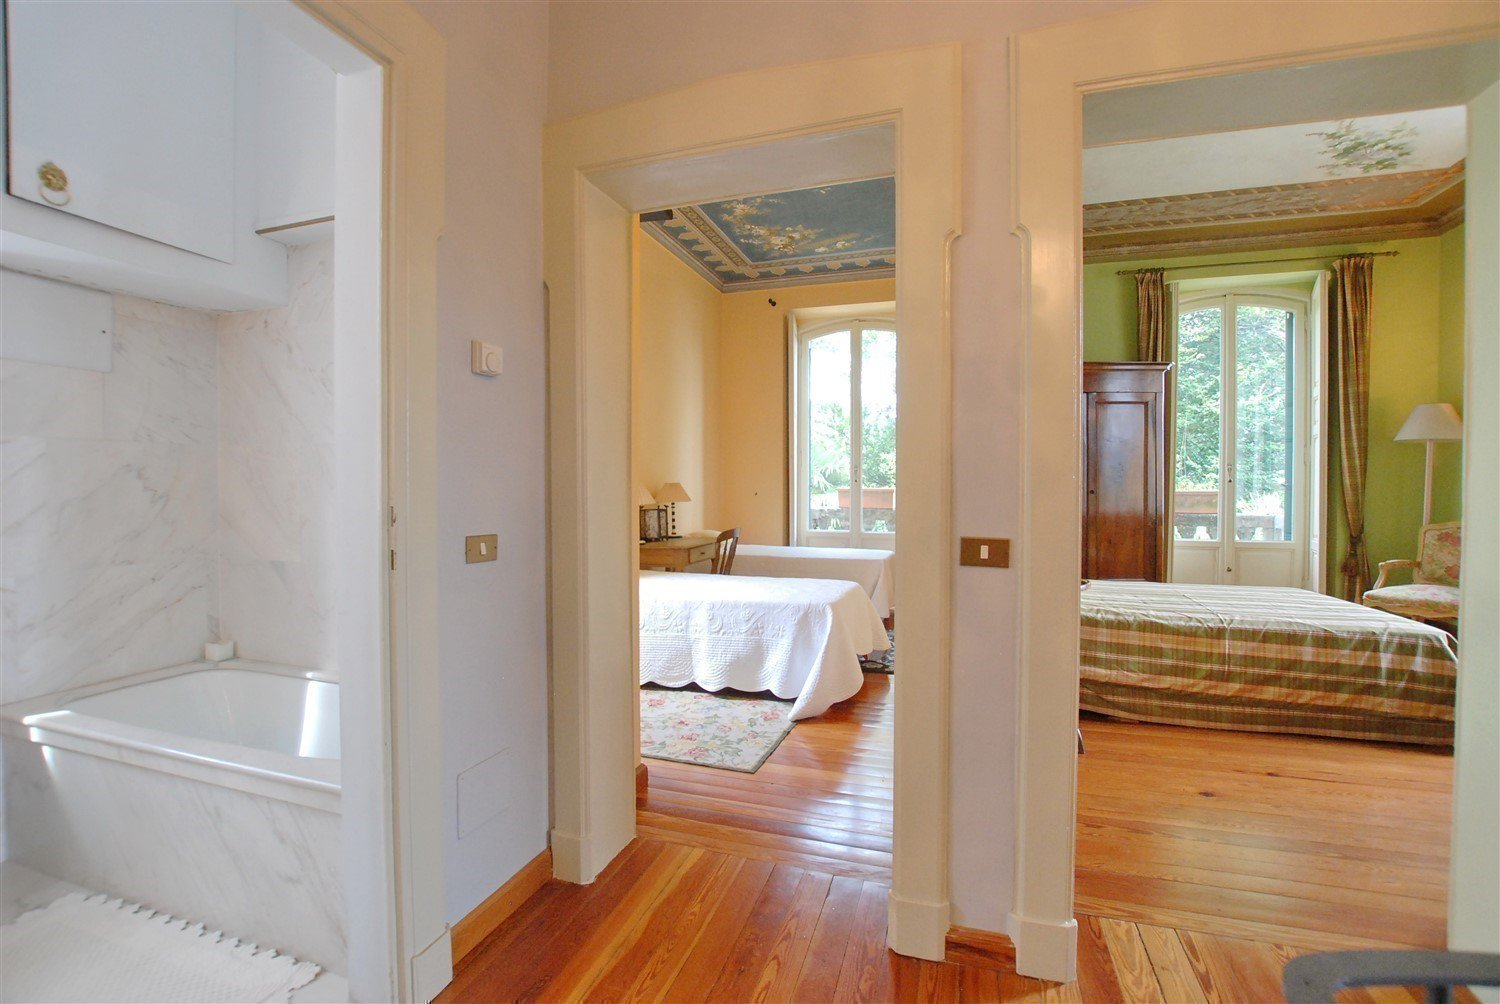 Luxurious apartment for sale in Stresa - rooms